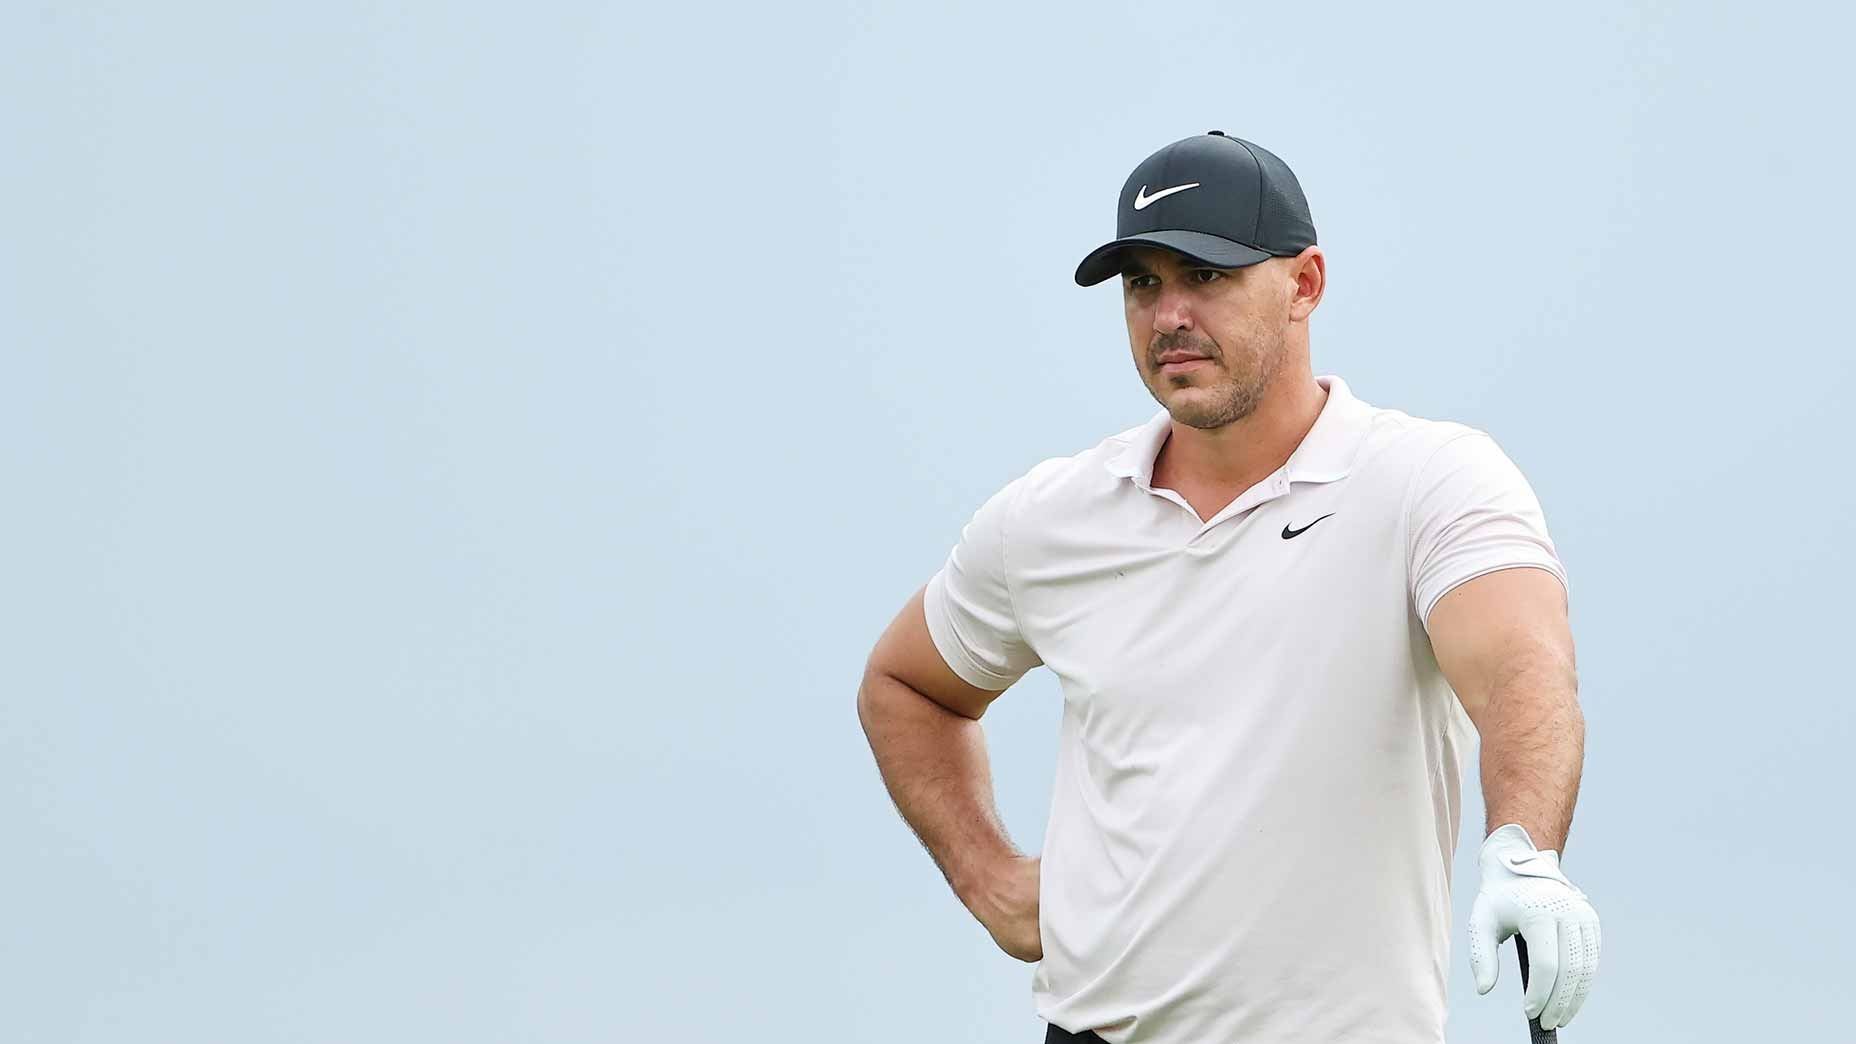 brooks koepka stares distance